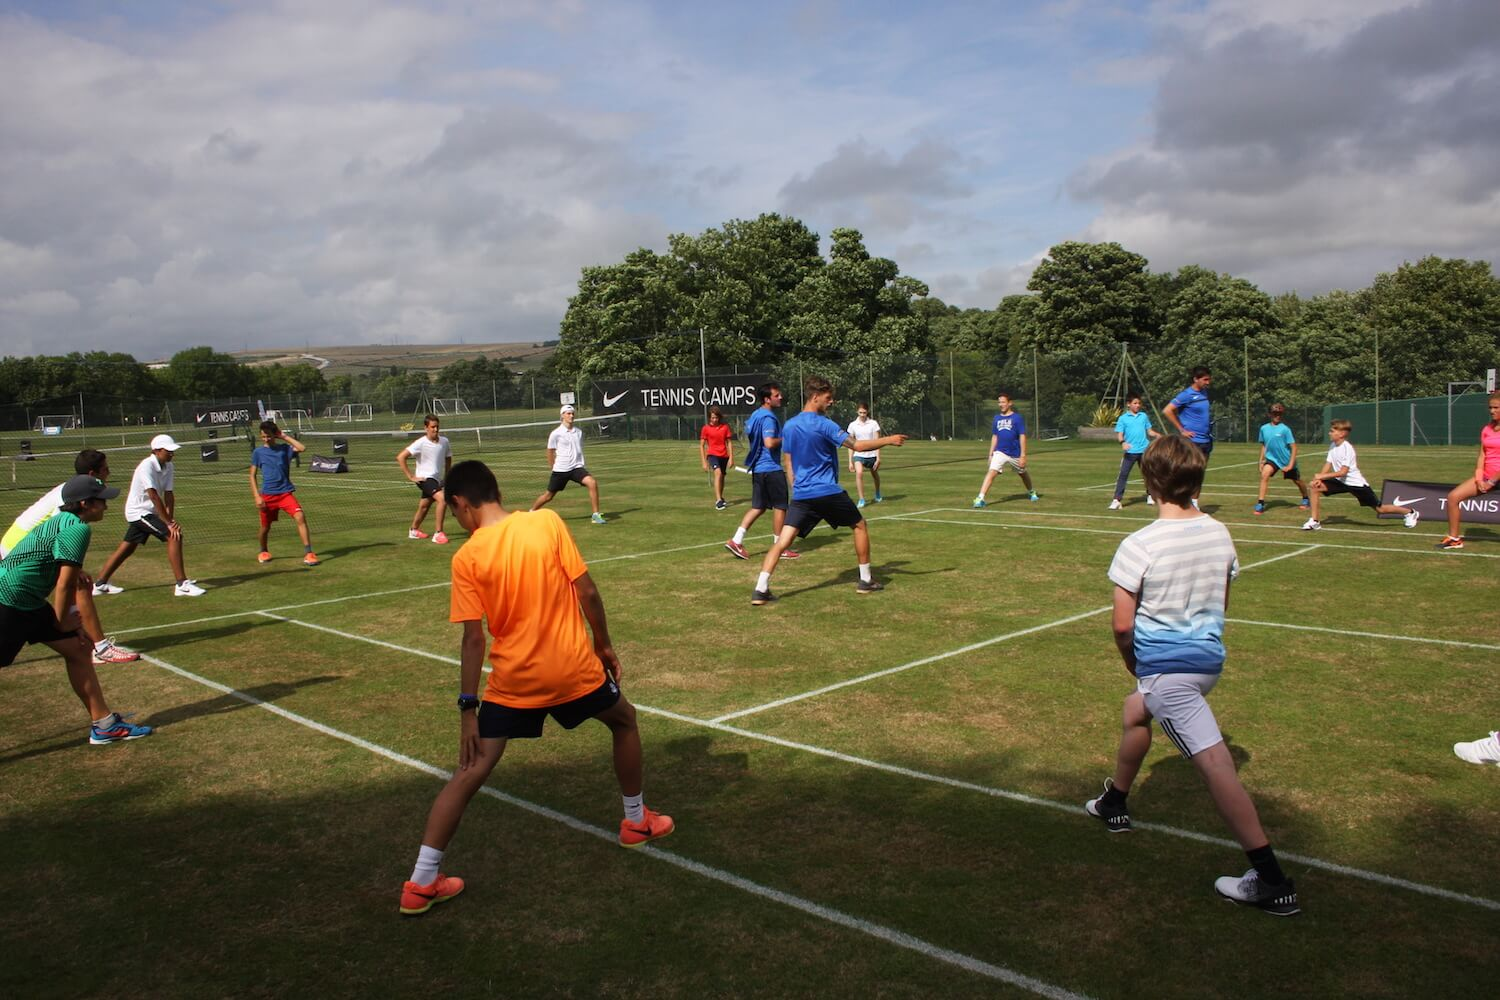 Copy of Tennis-Court-Nike-Camps-Lancing